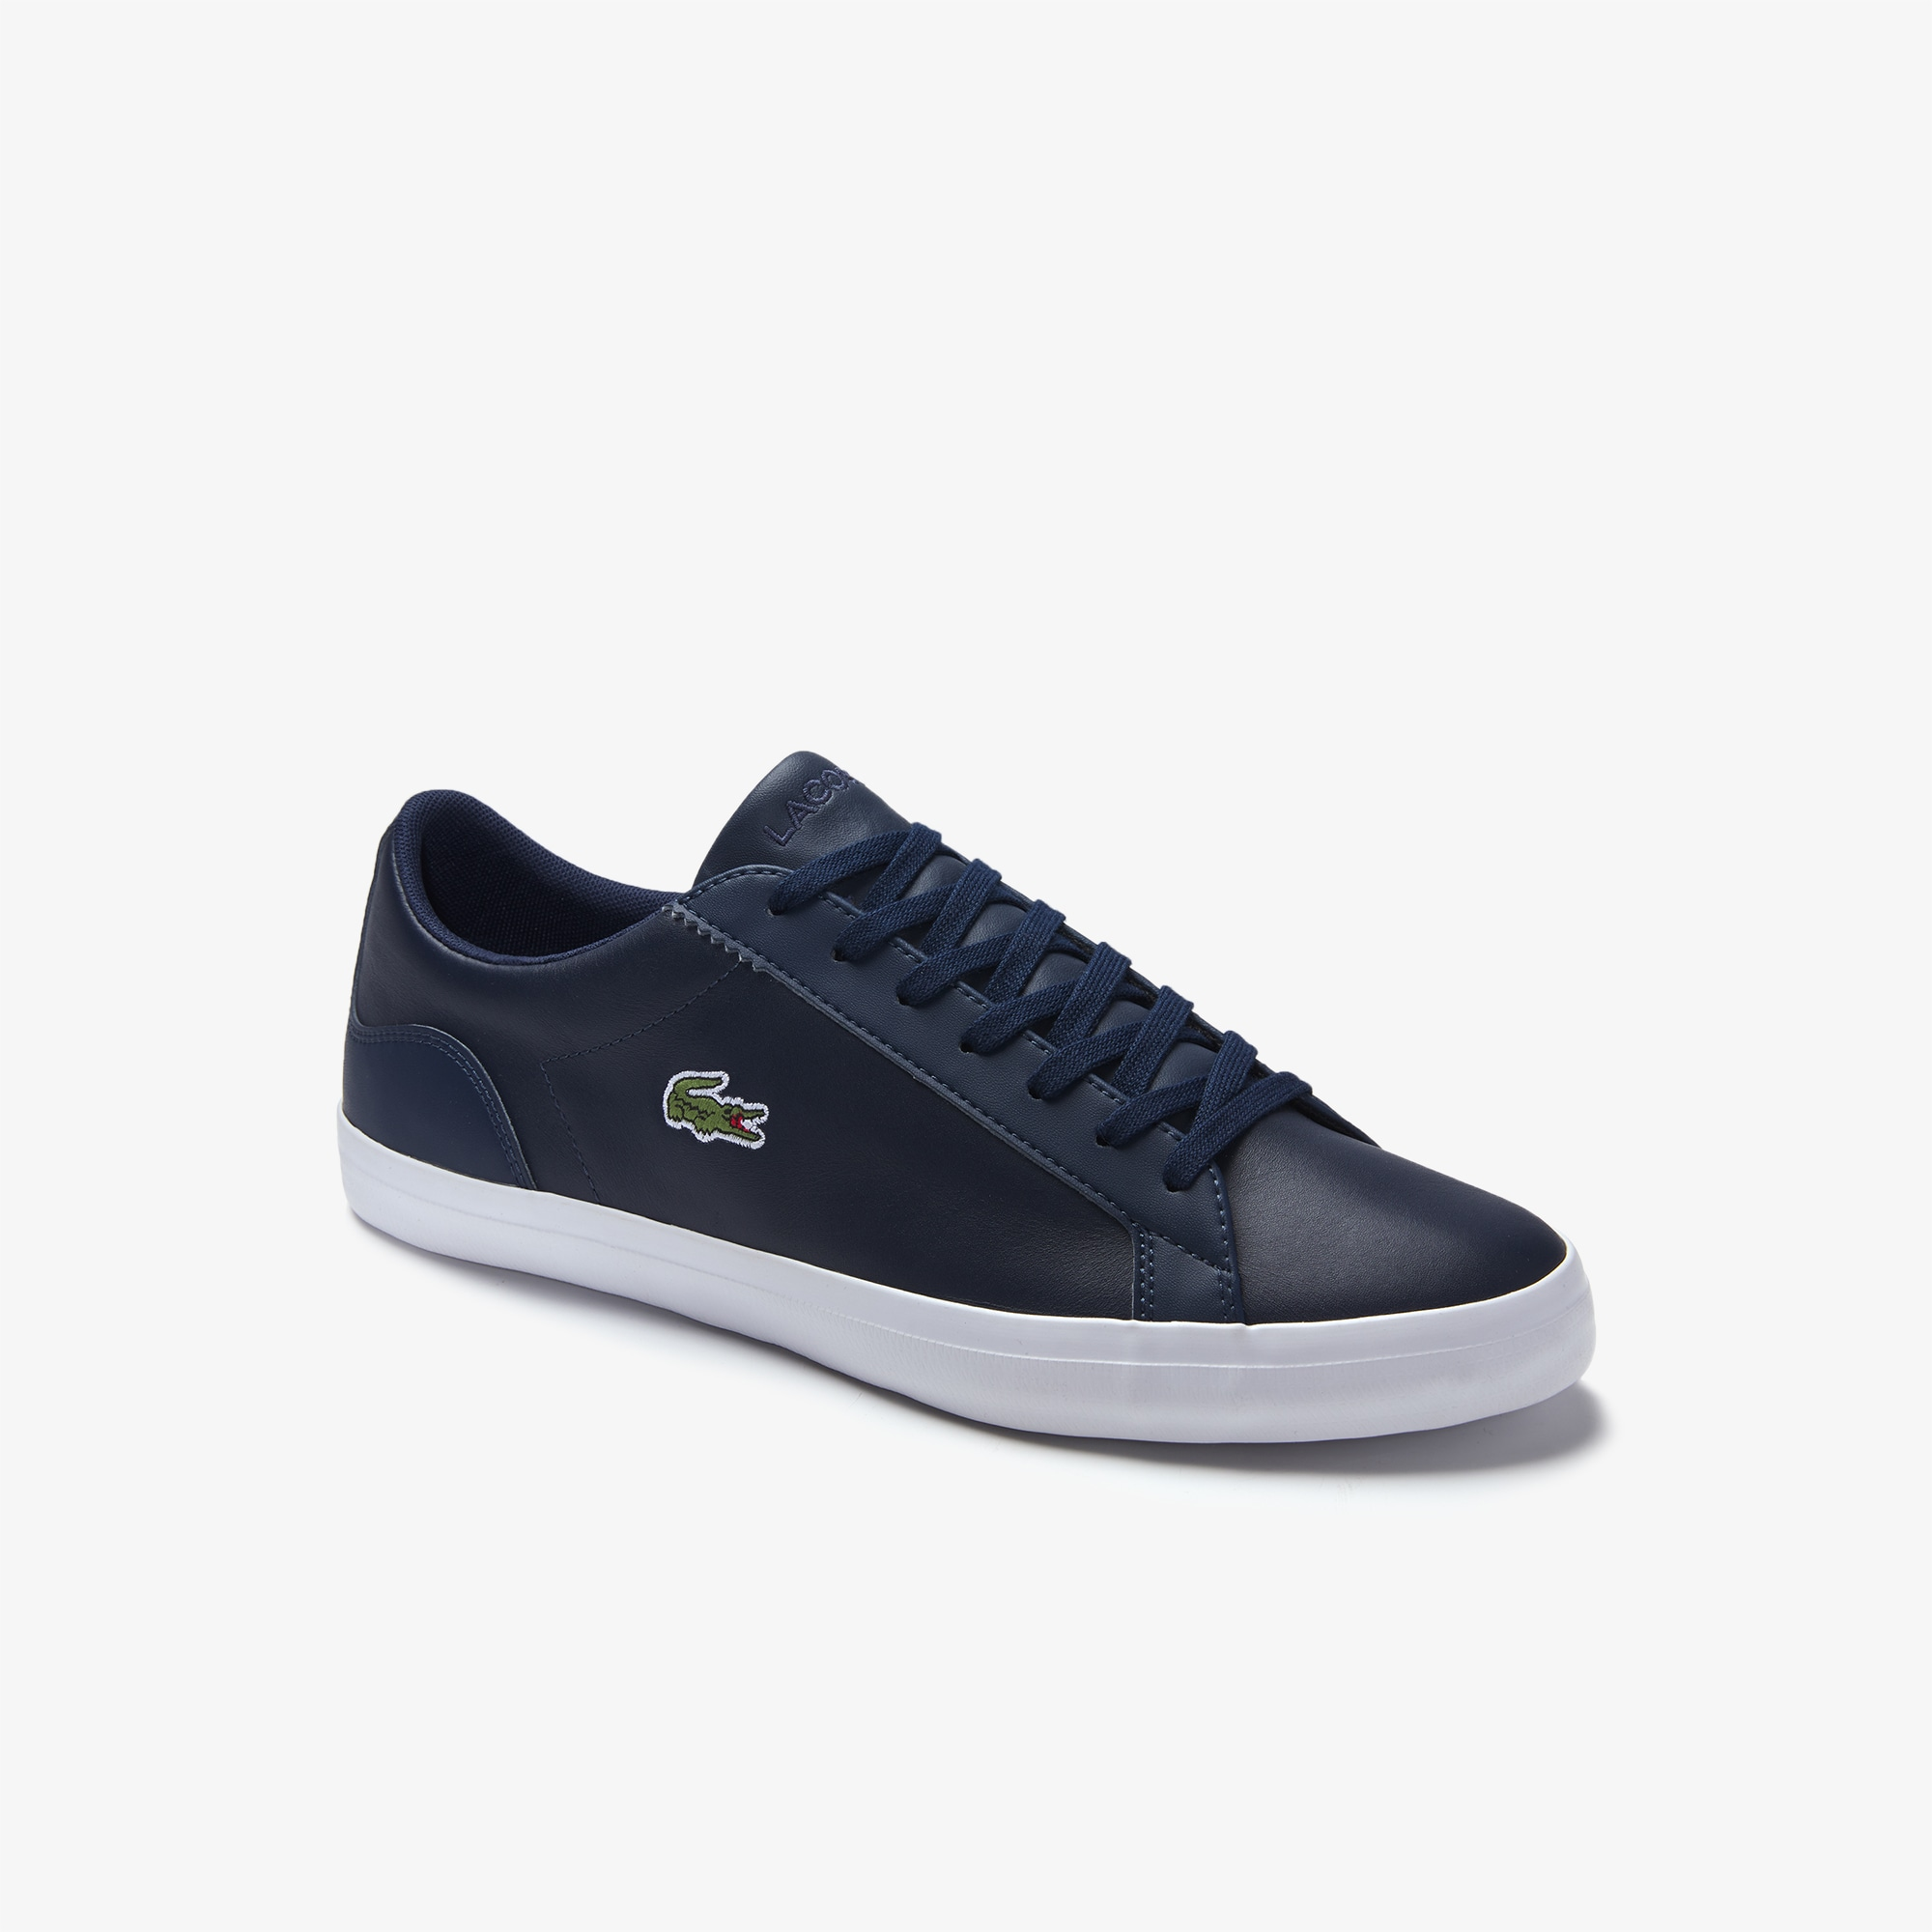 0c44976f6 All Shoes | LACOSTE